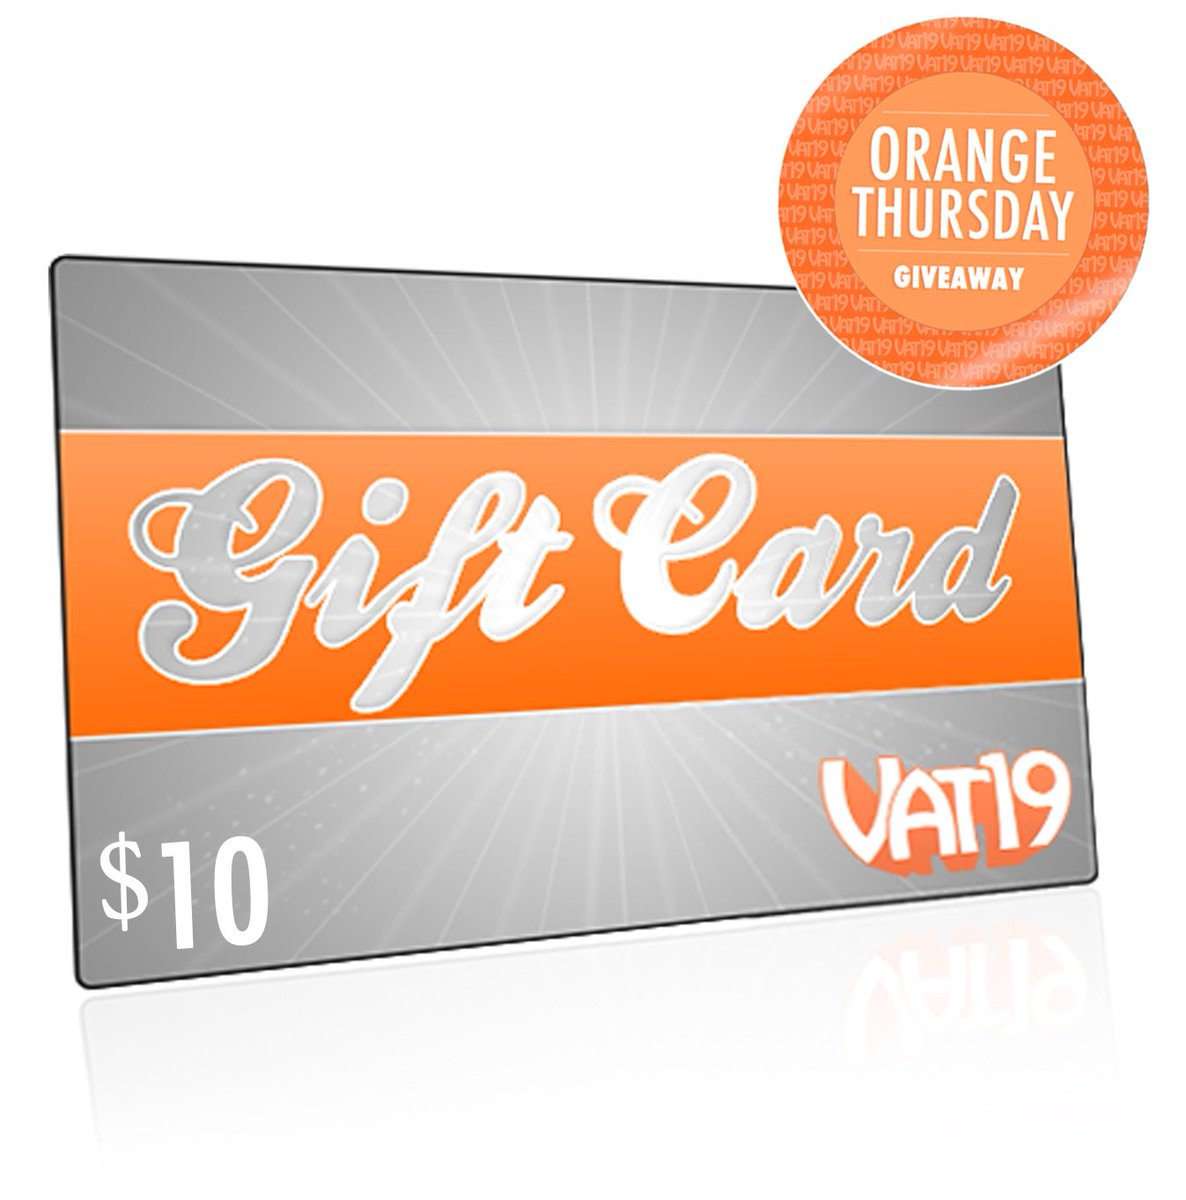 The next hour only: Win a $10 Gift Card for #OrangeThursday! To enter, like and RT this post! (Open internationally) https://t.co/nN17jFnpbJ